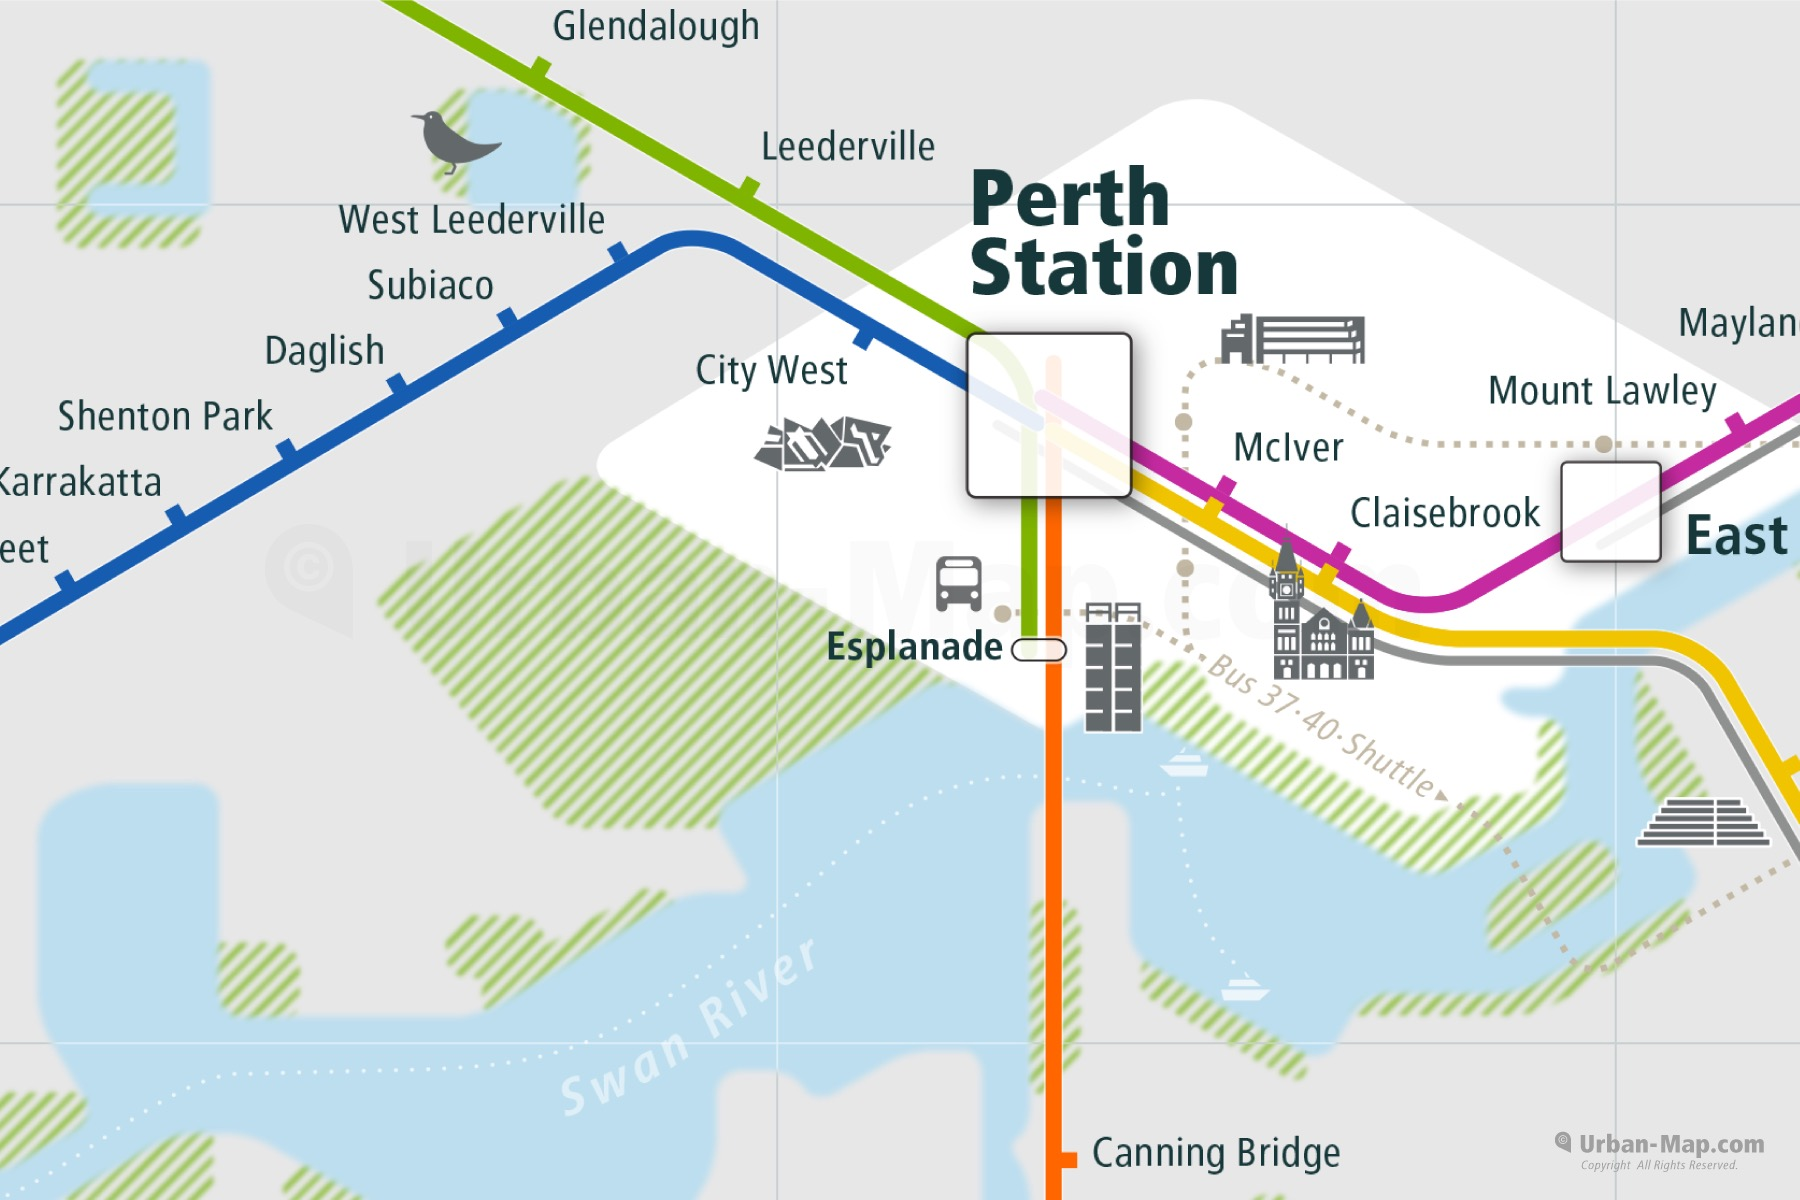 Perth City Rail Map shows the train and public transportation routes of - Close-Up